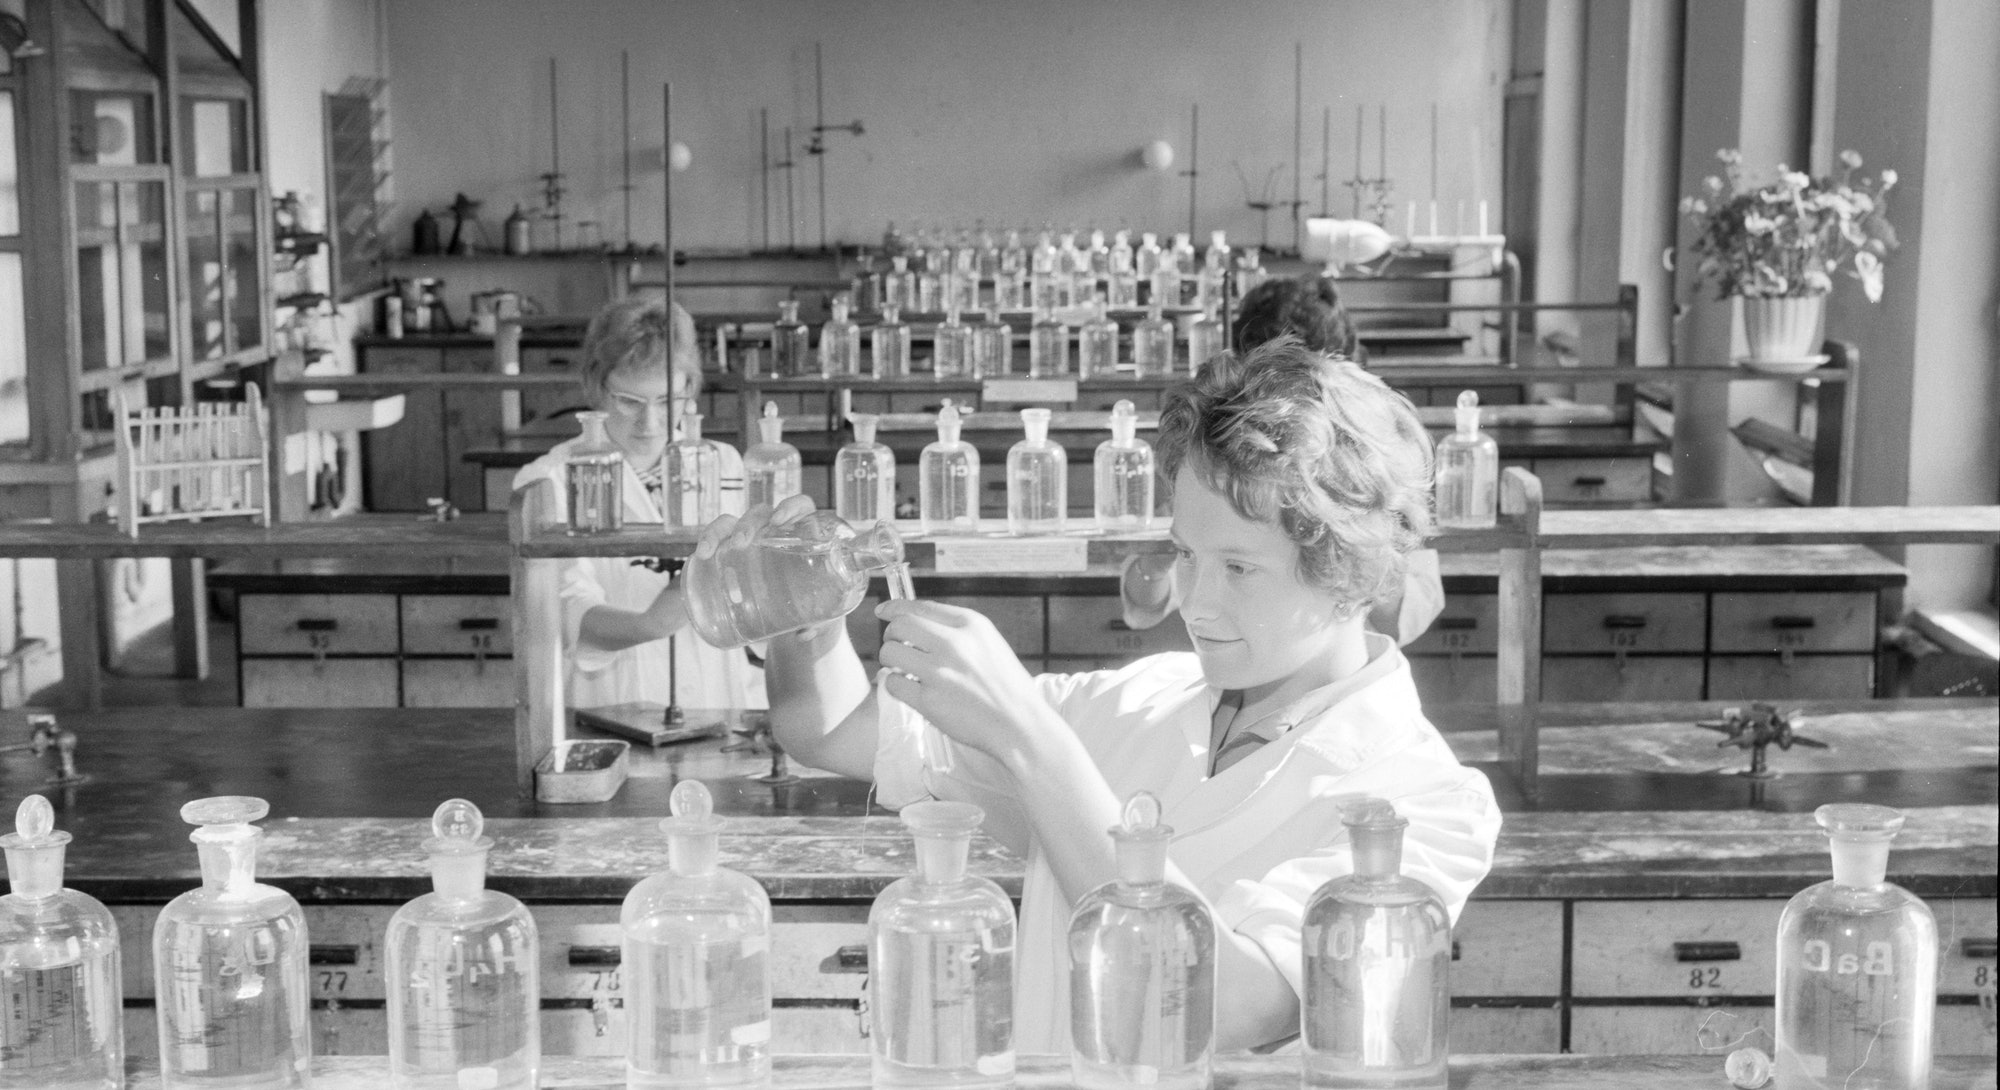 Female students in a laboratory of the Chemistry Department of the University of Helsinki 1960. (Photo by: Geography Photos/Universal Images Group via Getty Images)